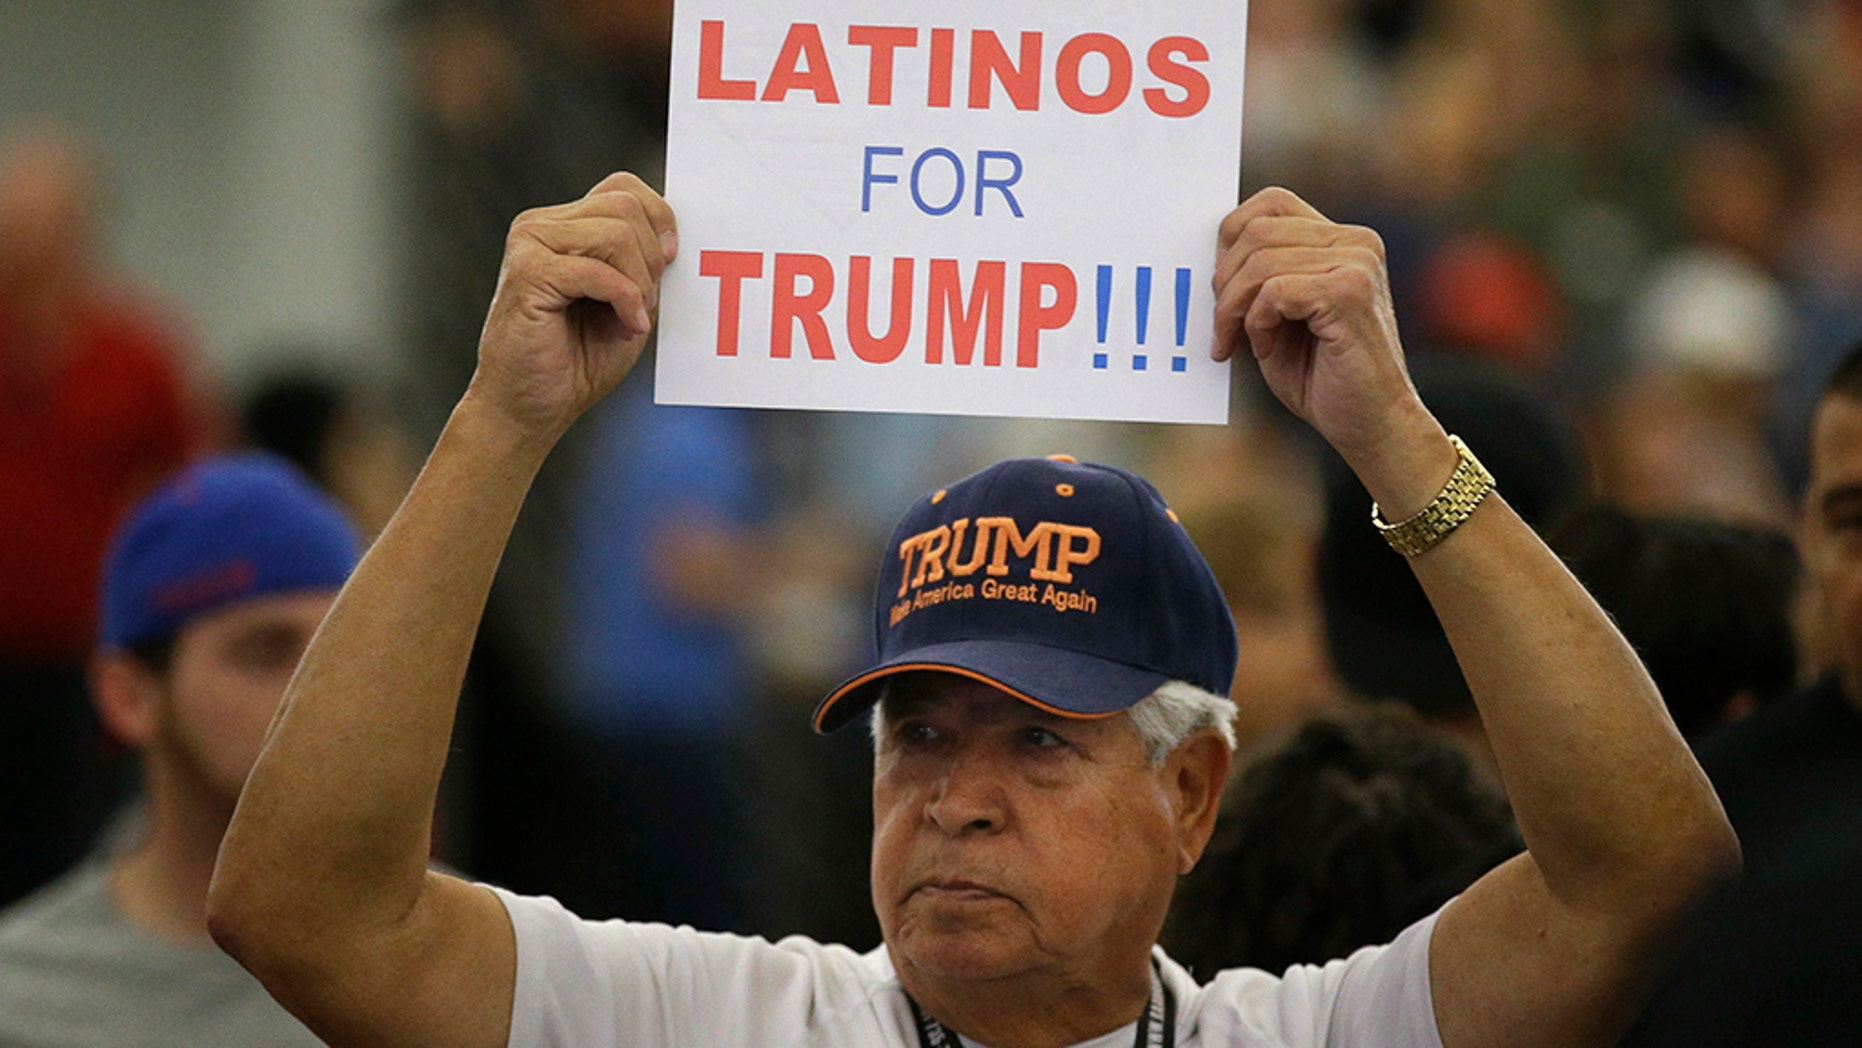 Republicans are holding onto a steady share of the Latino vote in the Trump era. With a president who targets immigrants from Latin America, some analysts predicted a Latino backlash against the GOP. But it hasn't happened. Data from AP's VoteCast survey suggests Republicans are holding on to support from Latino evangelicals and veterans. (AP Photo/Jae C. Hong, File)